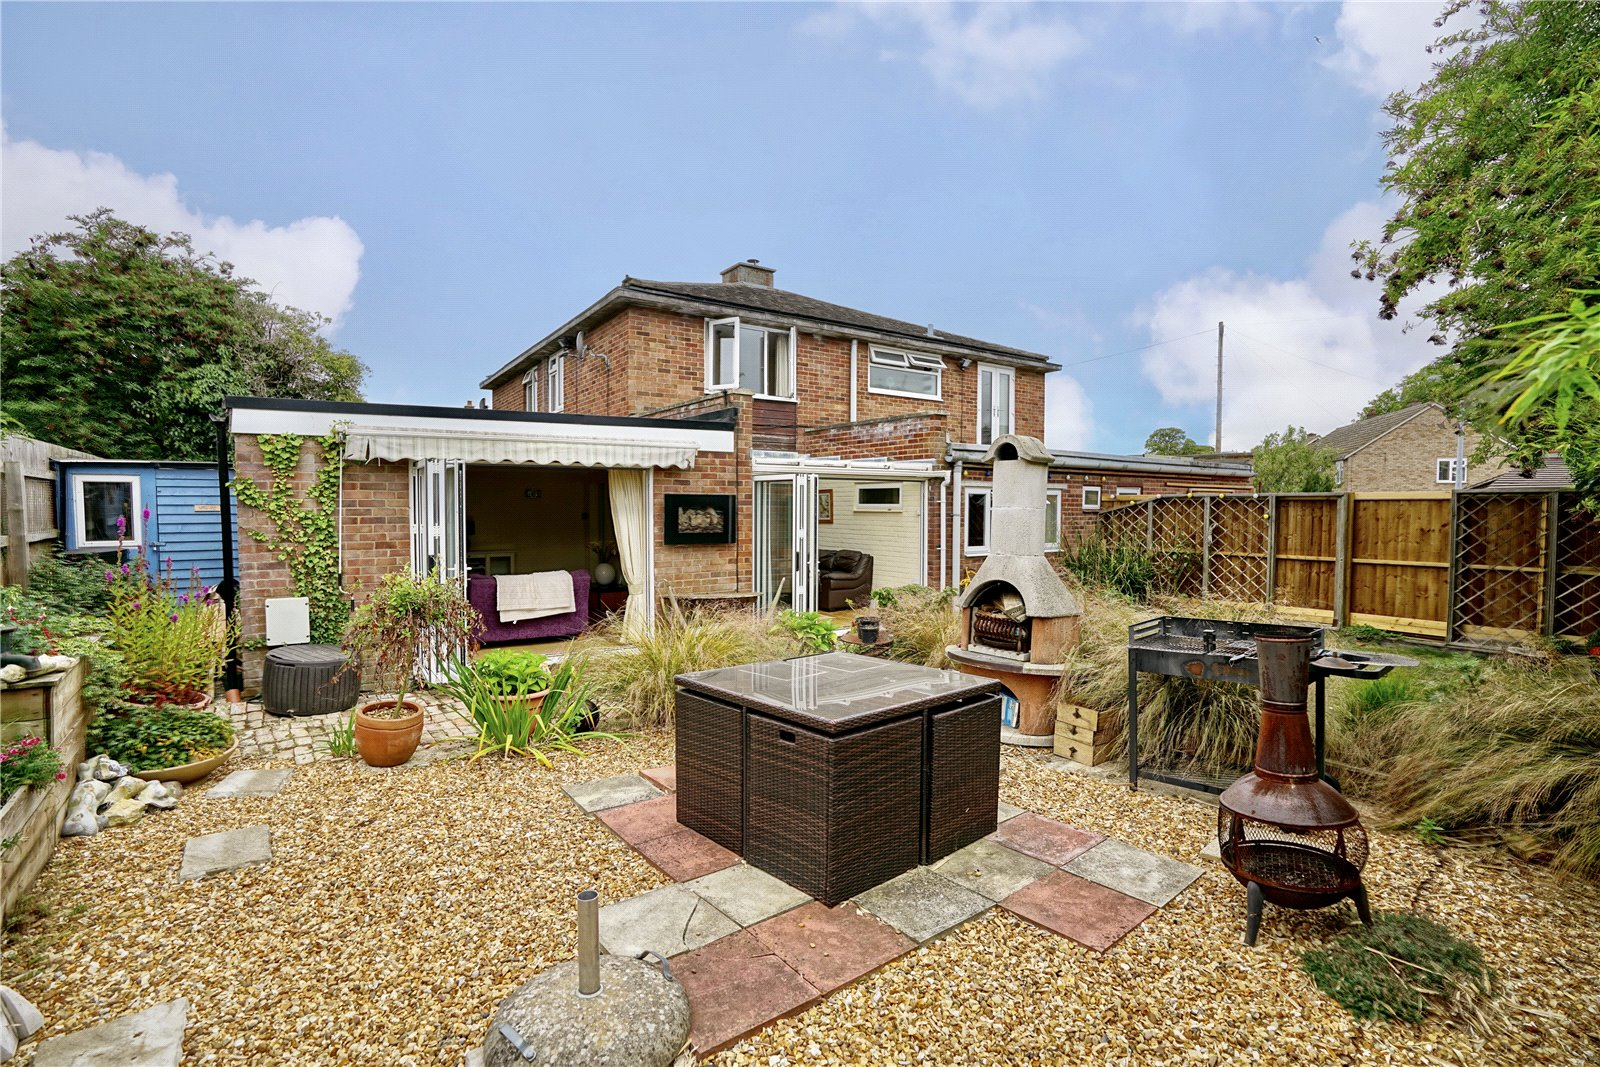 3 bed house for sale in St. Neots, Charles Street, PE19 1PA, PE19